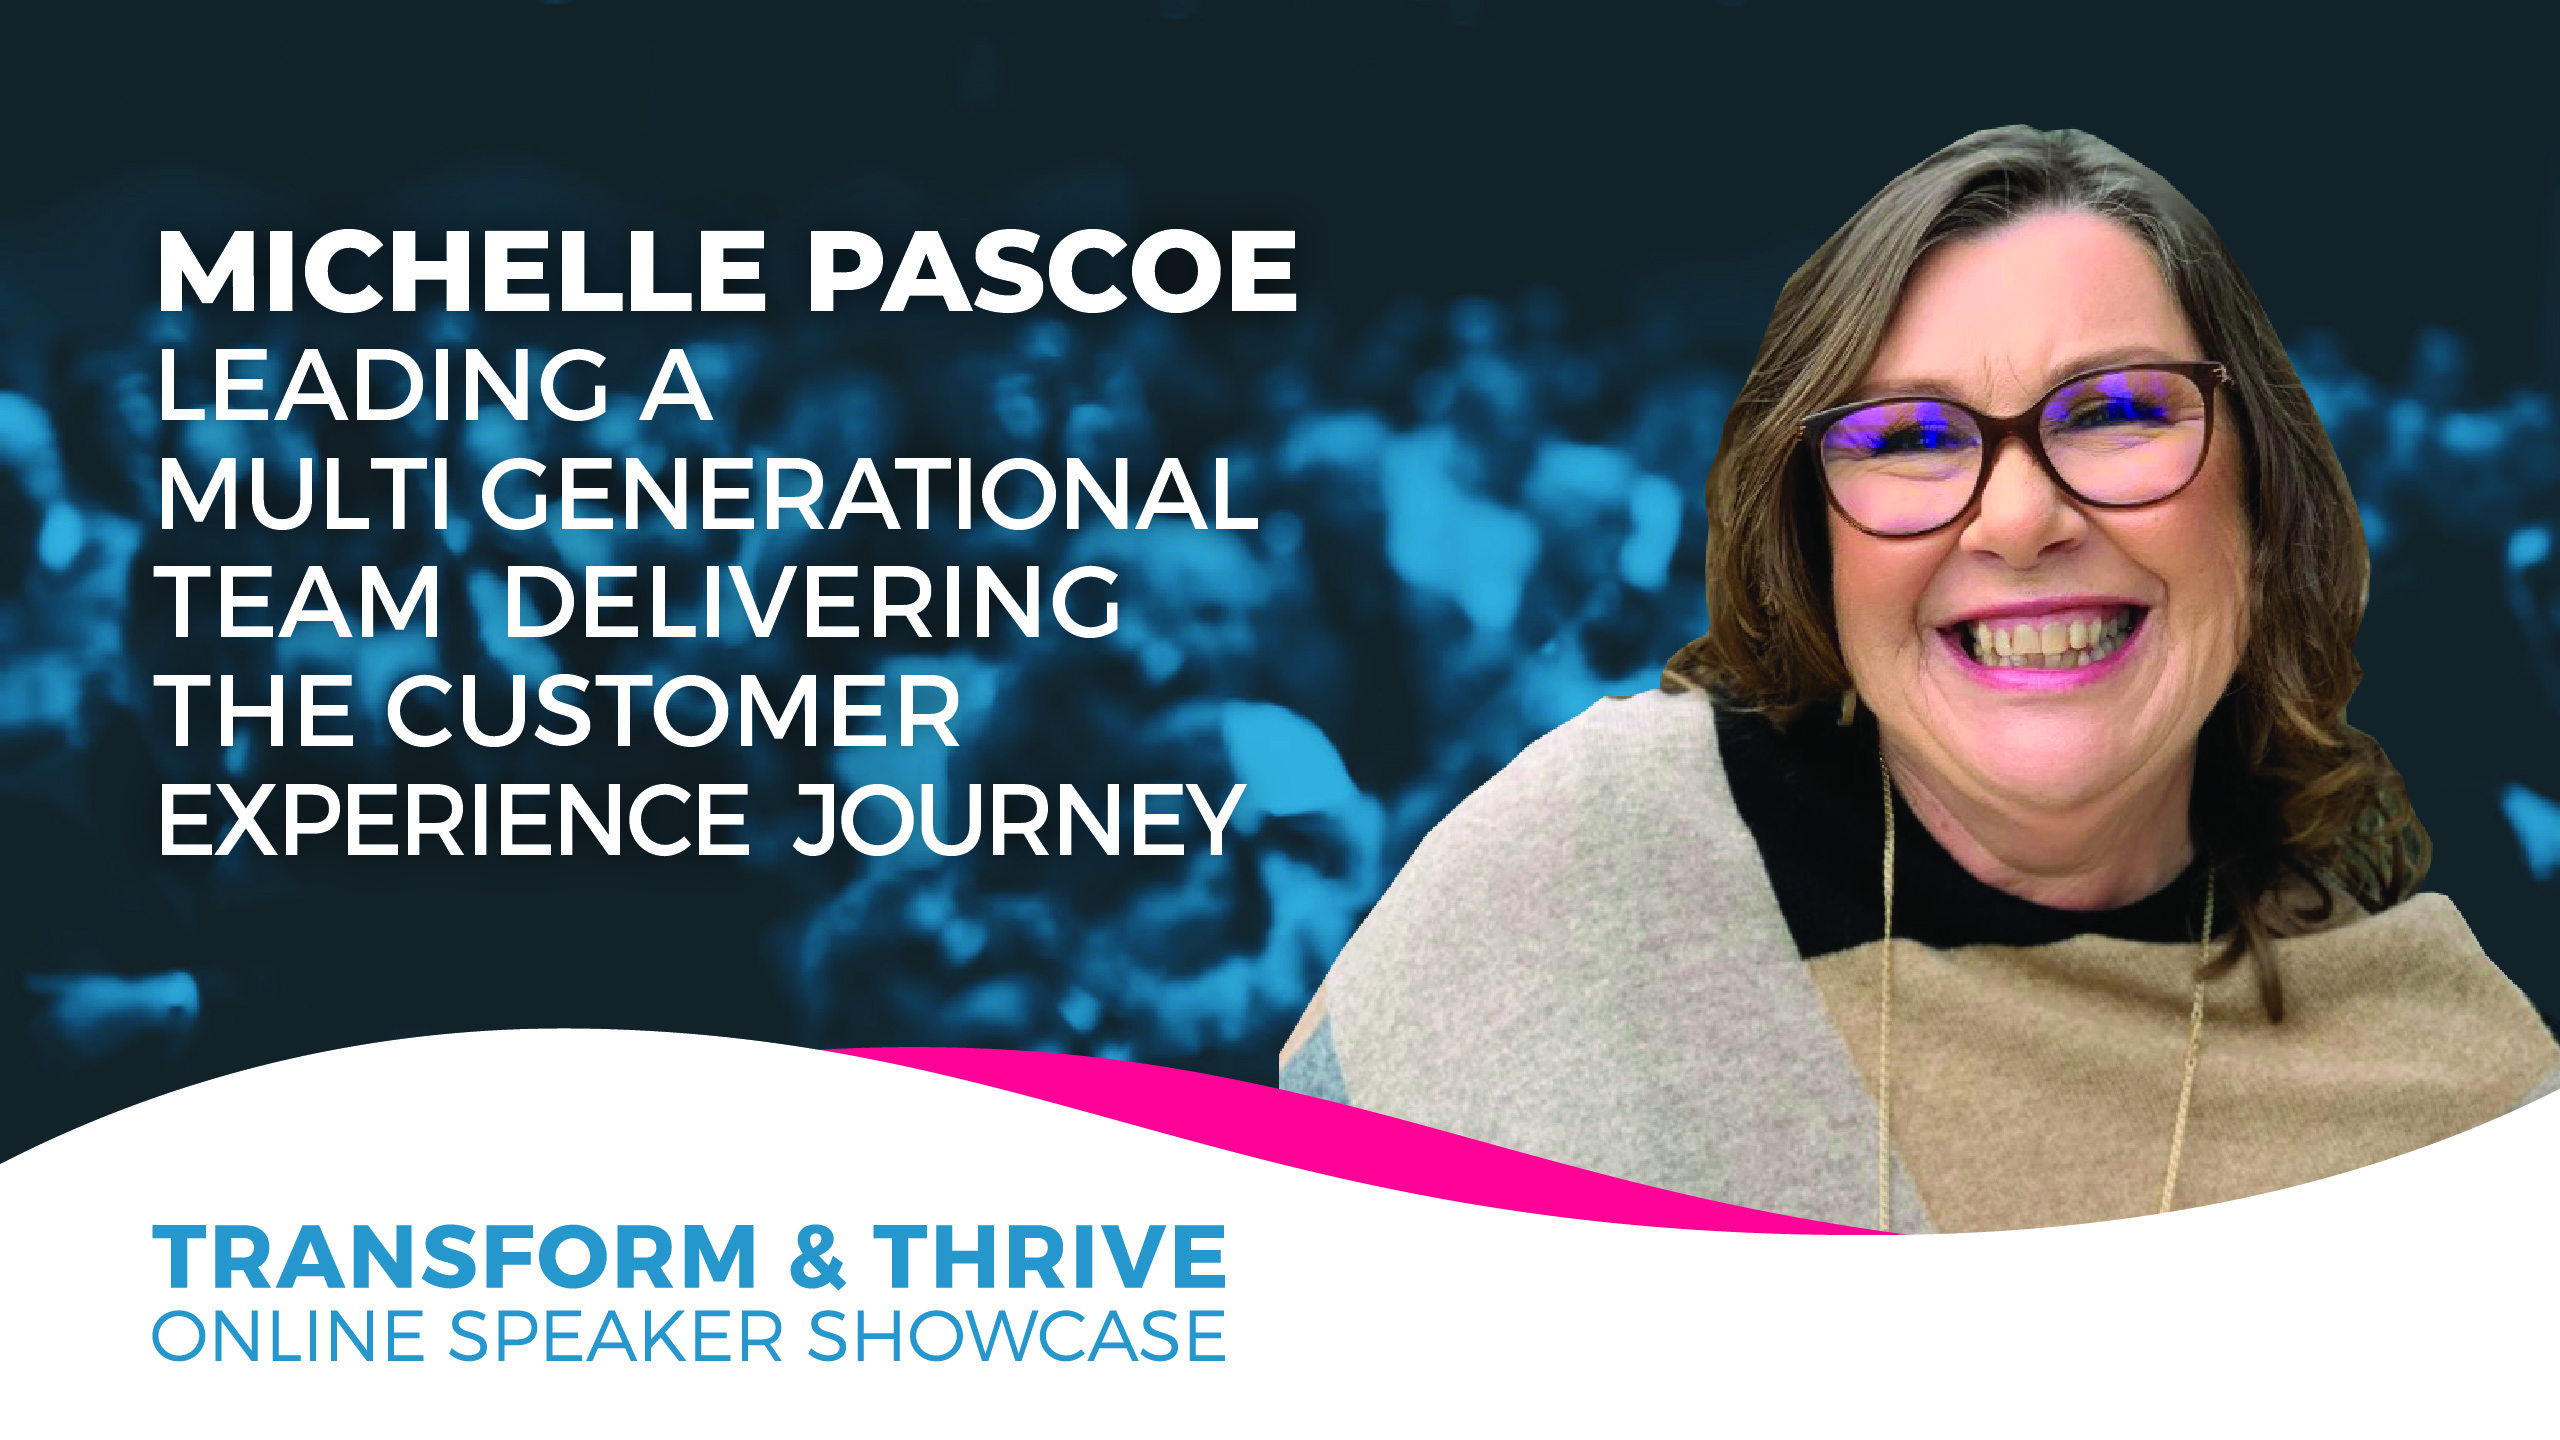 Leading A Multi Generational Team Delivering The Customer Experience Journey